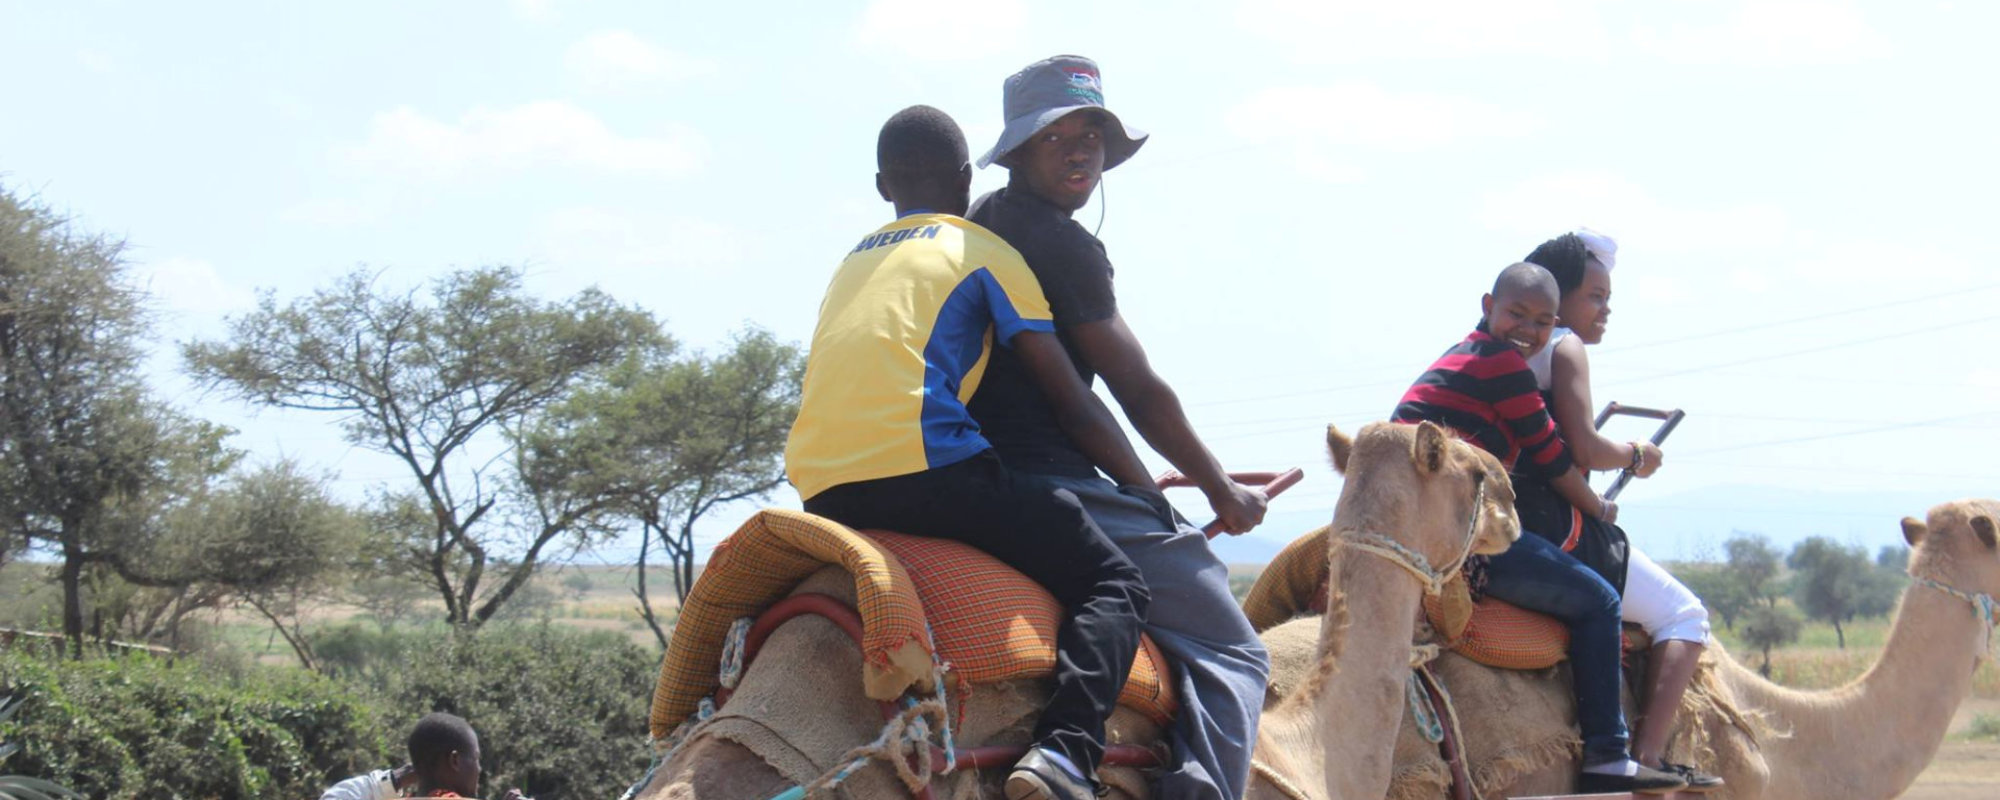 people riding camel